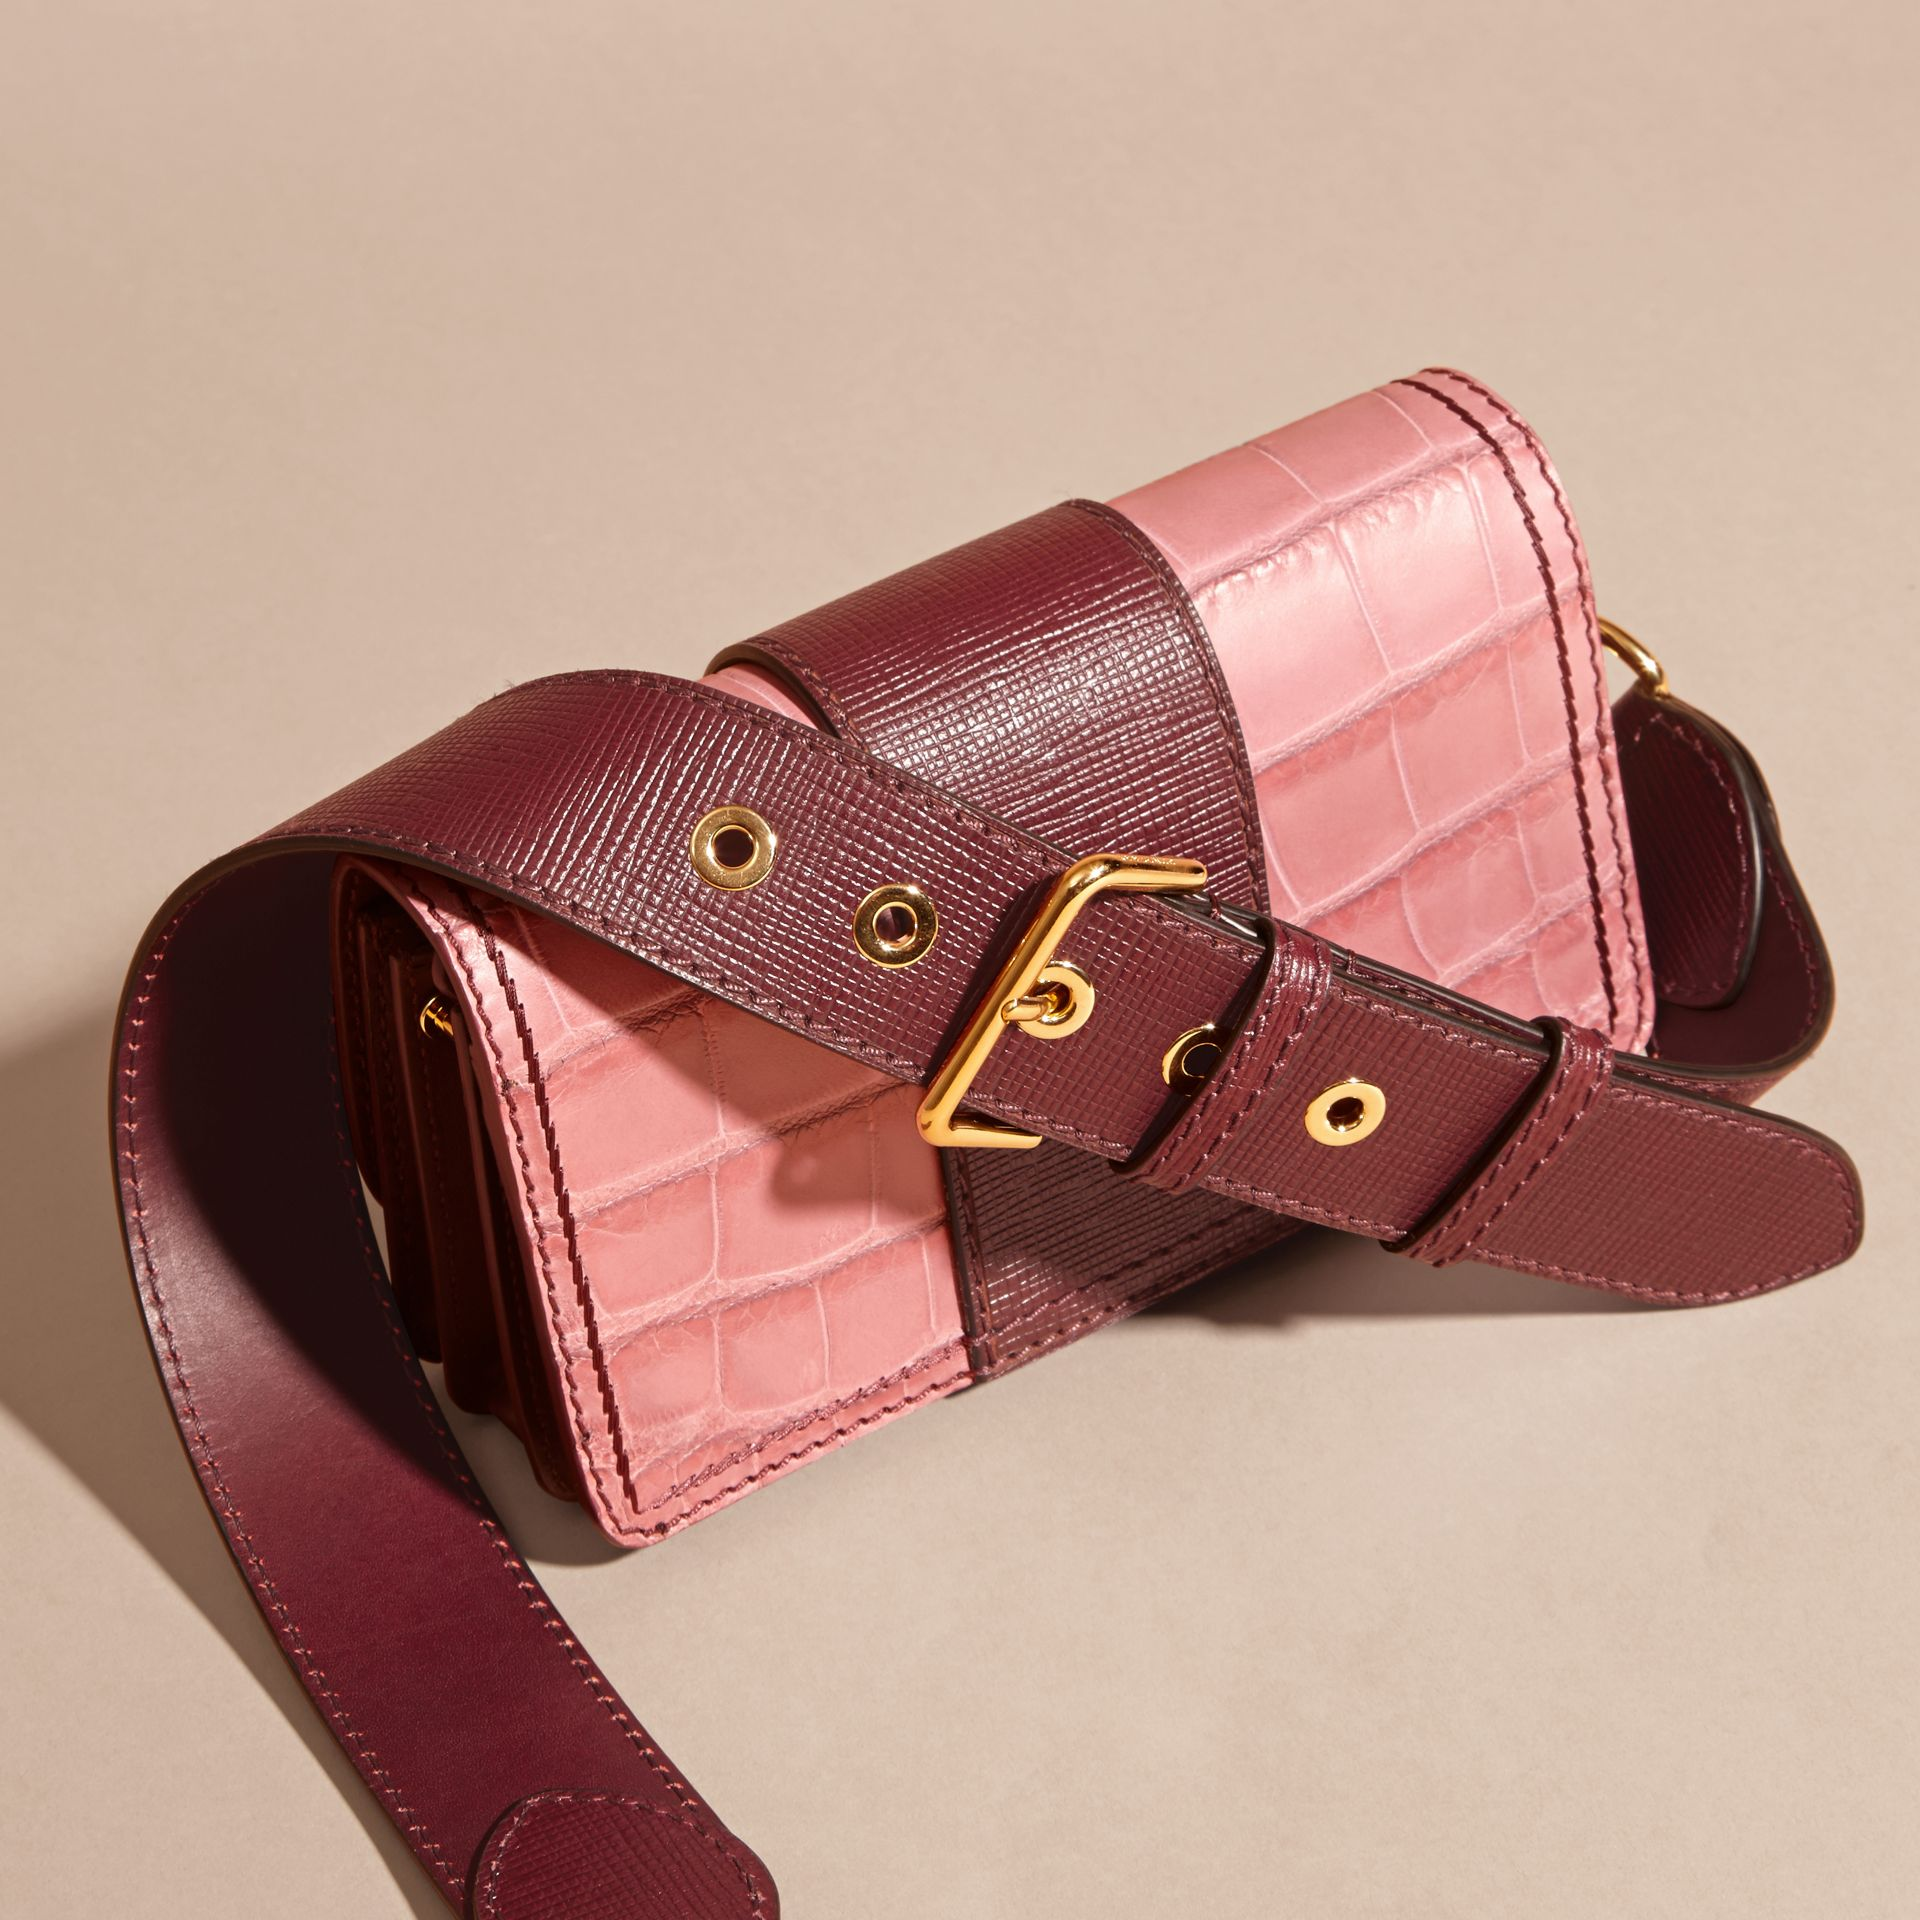 The Small Buckle Bag in Alligator and Leather in Dusky Pink/ Burgundy - Women | Burberry - gallery image 5